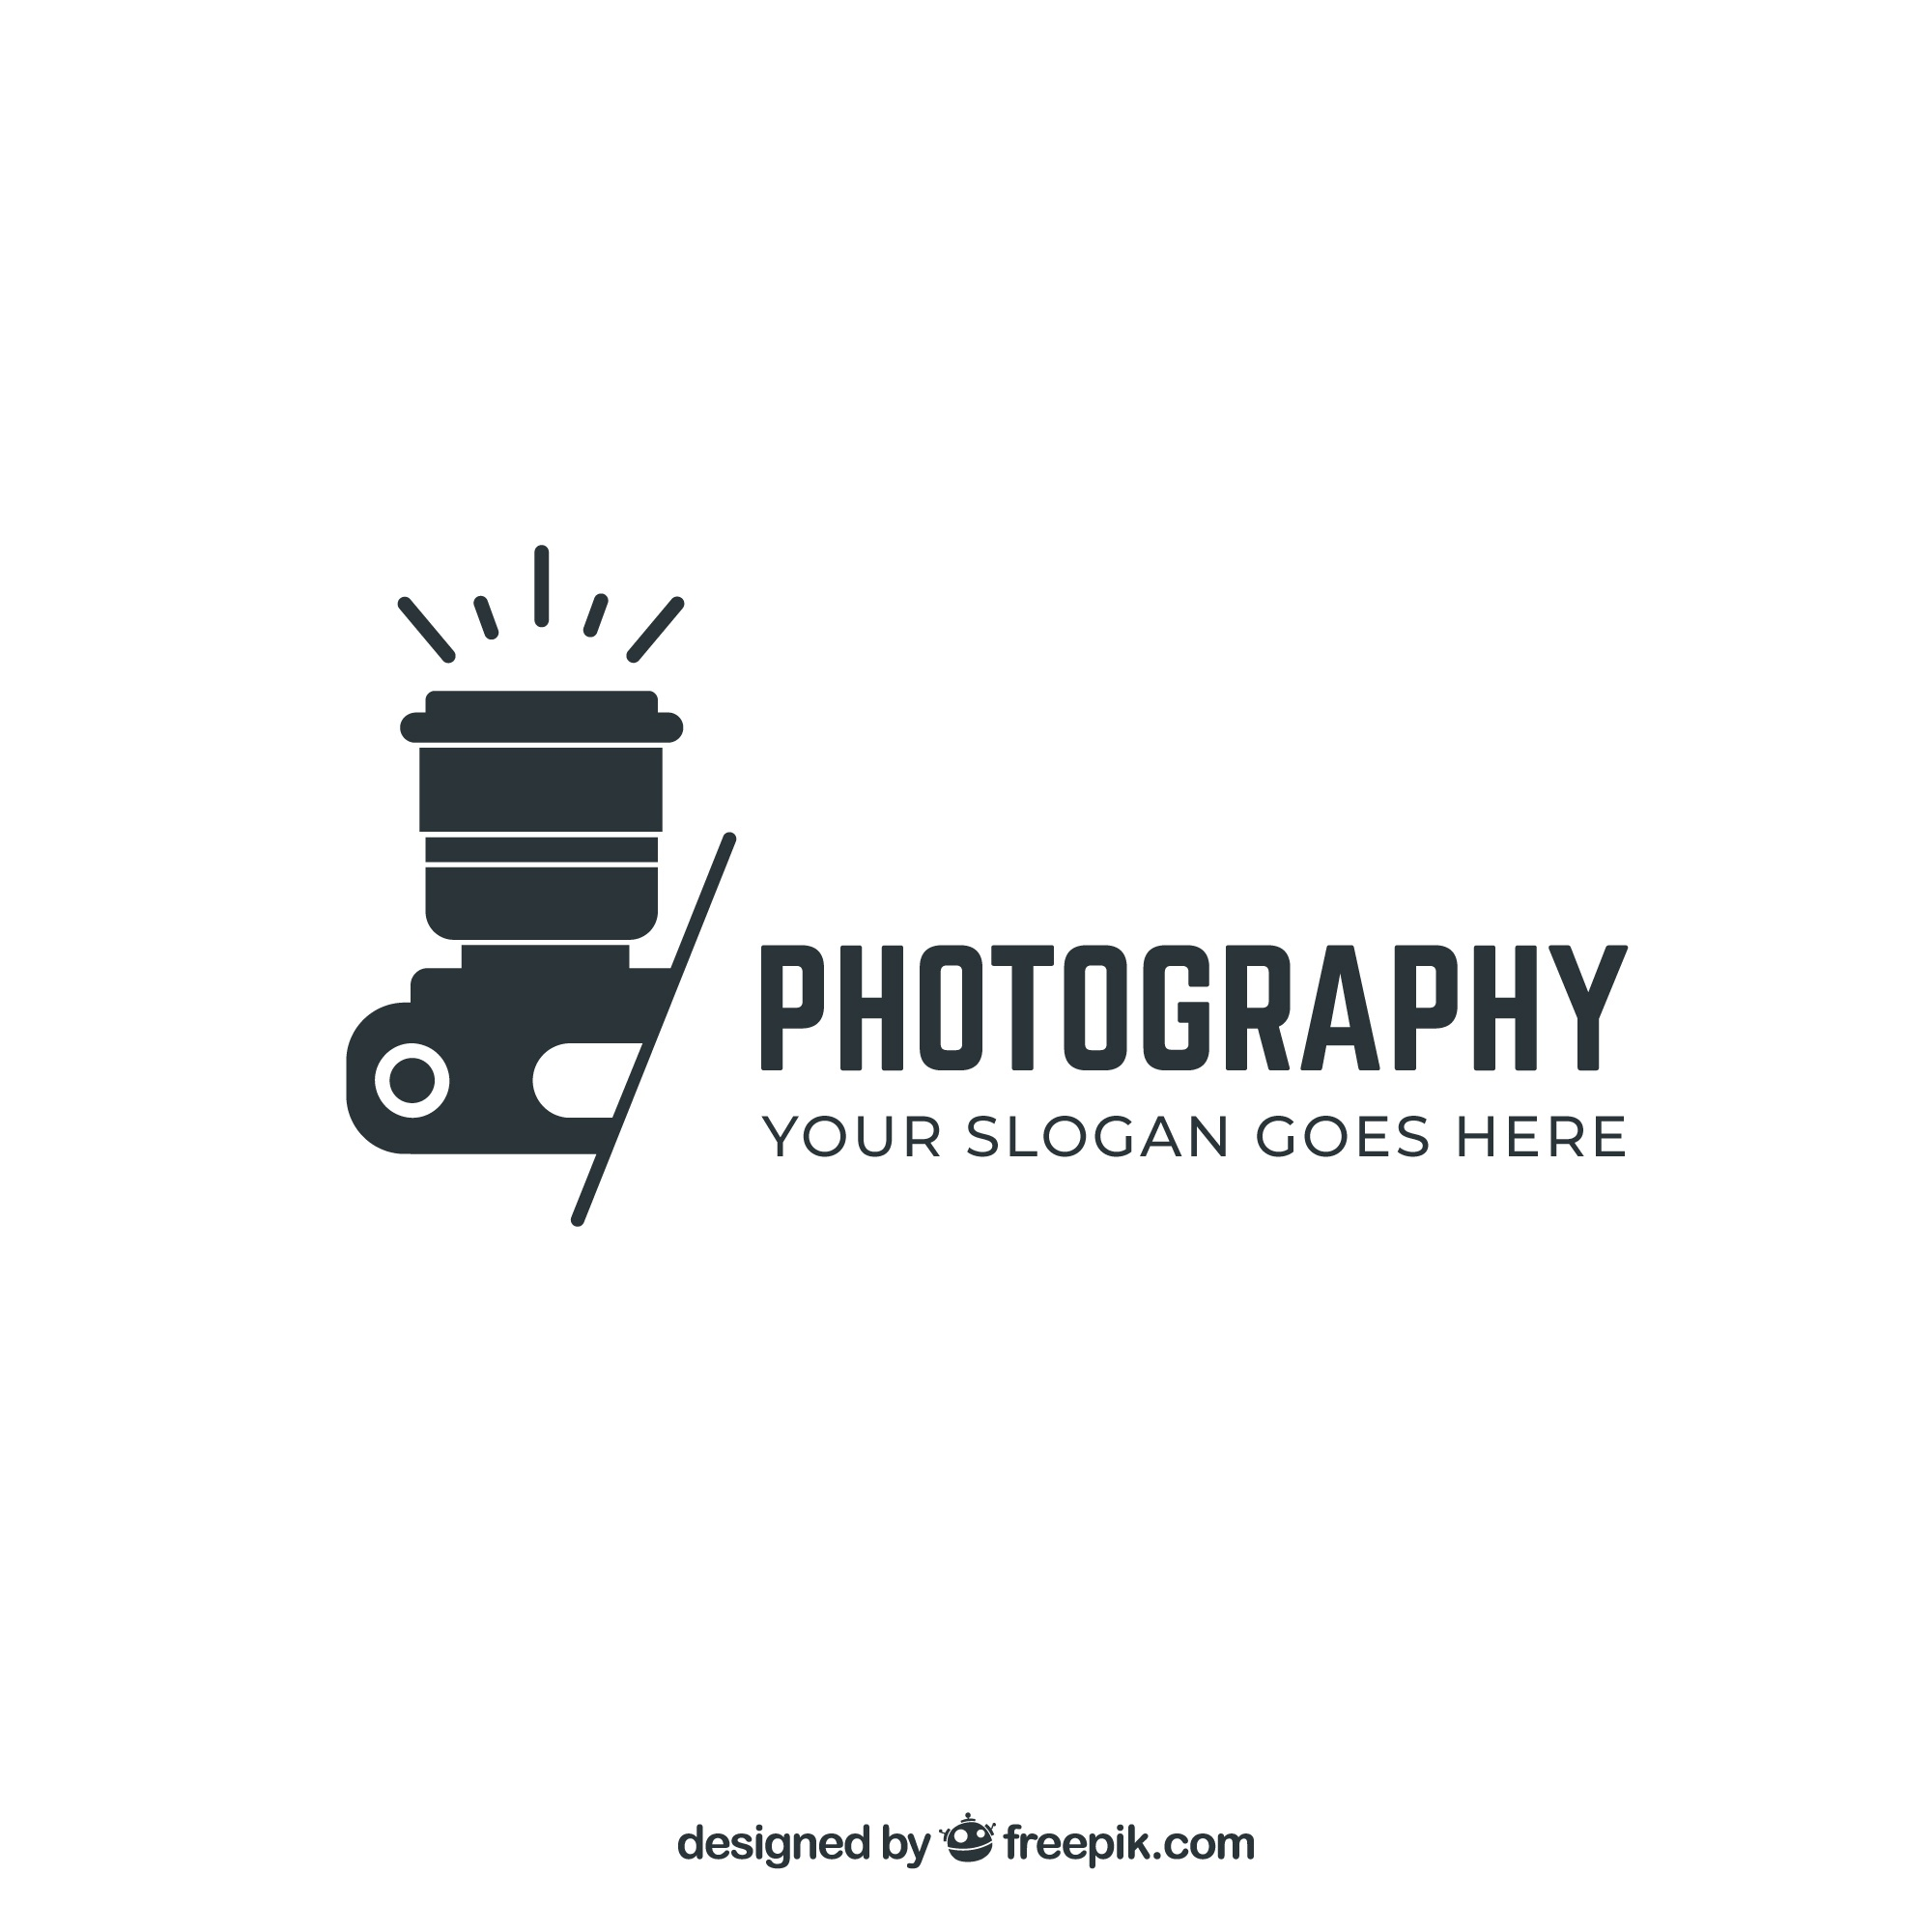 Photography logo in black color